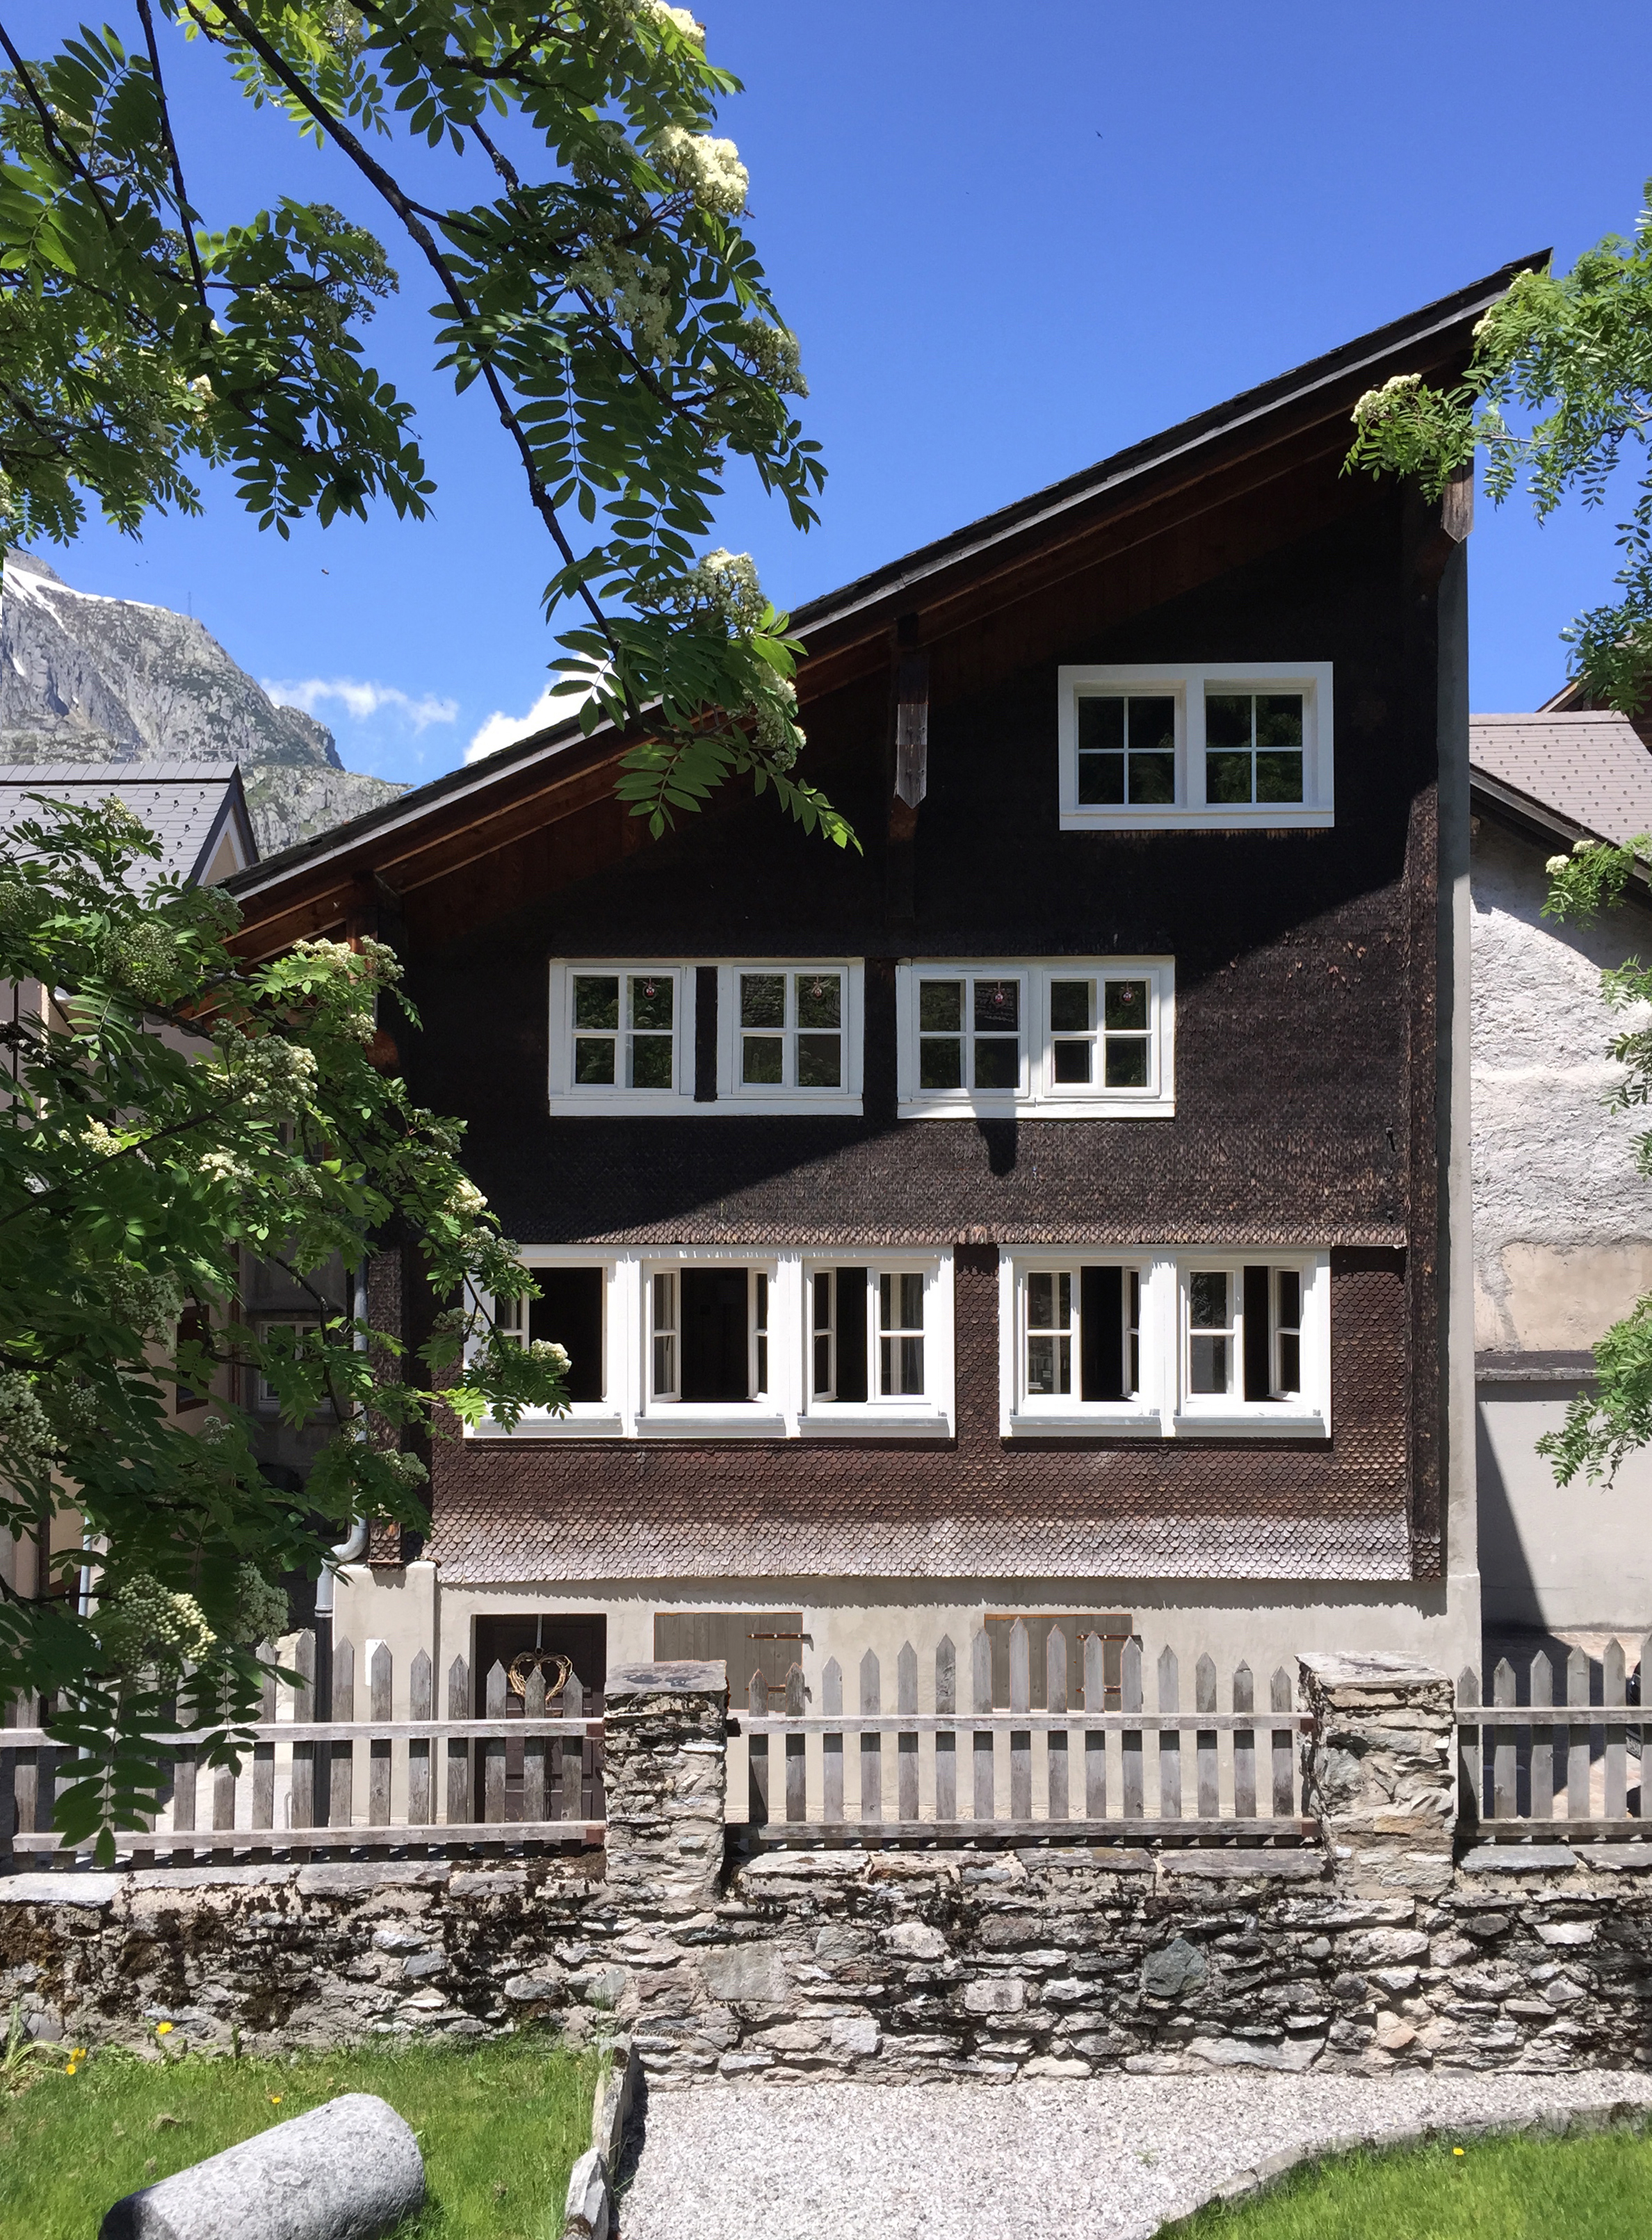 Book Your Unique Mountain Chalets In The Authentic Alps